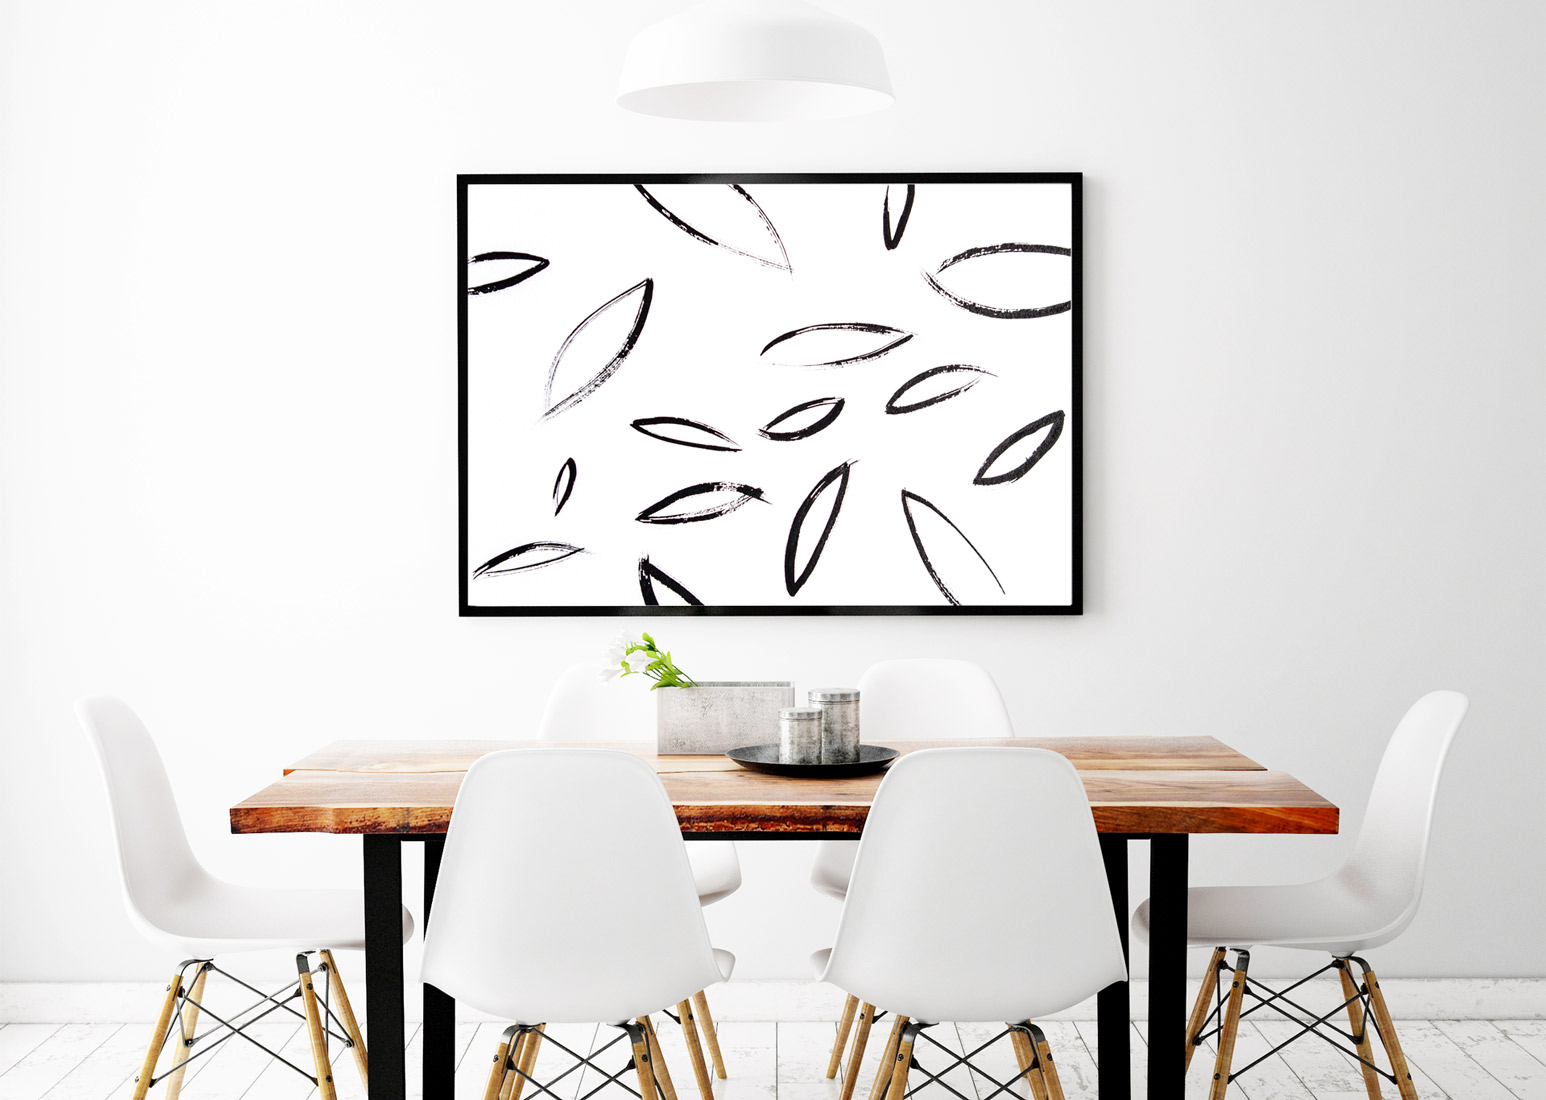 ORIGINAL ART + MODERN INTERIORS